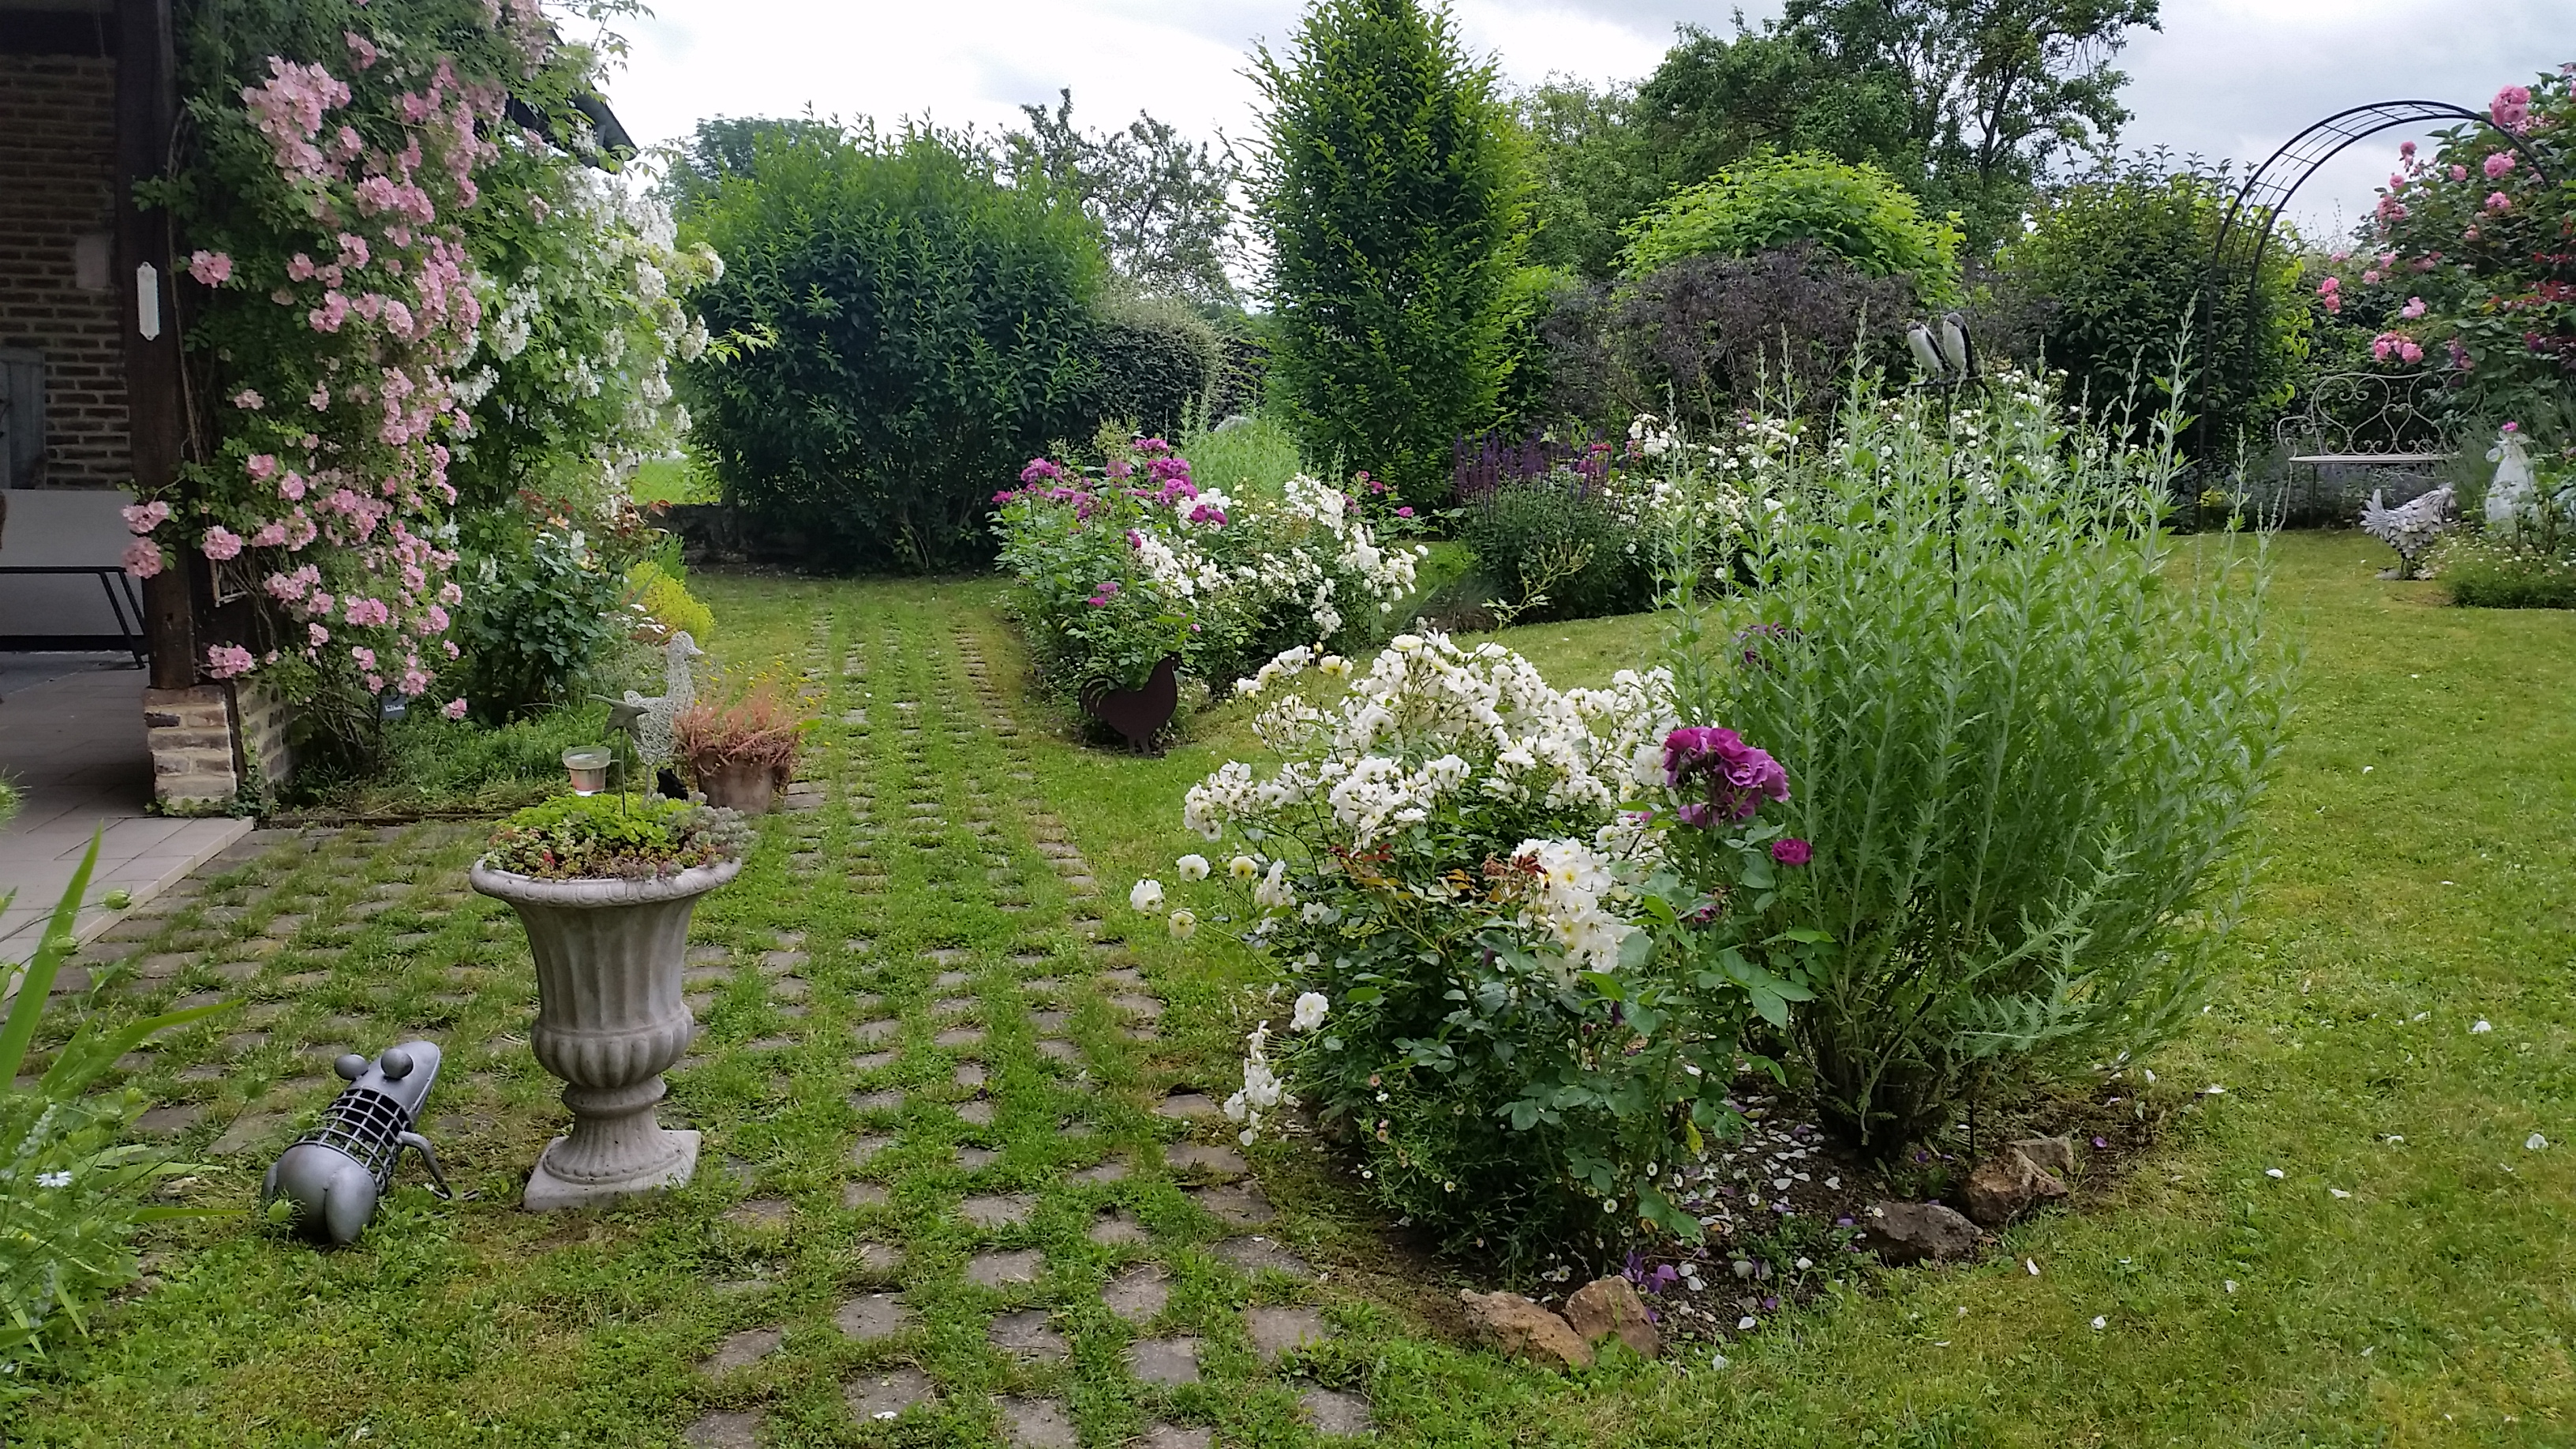 Meilleur de creation de jardin id es de salon de jardin for Idee creation jardin